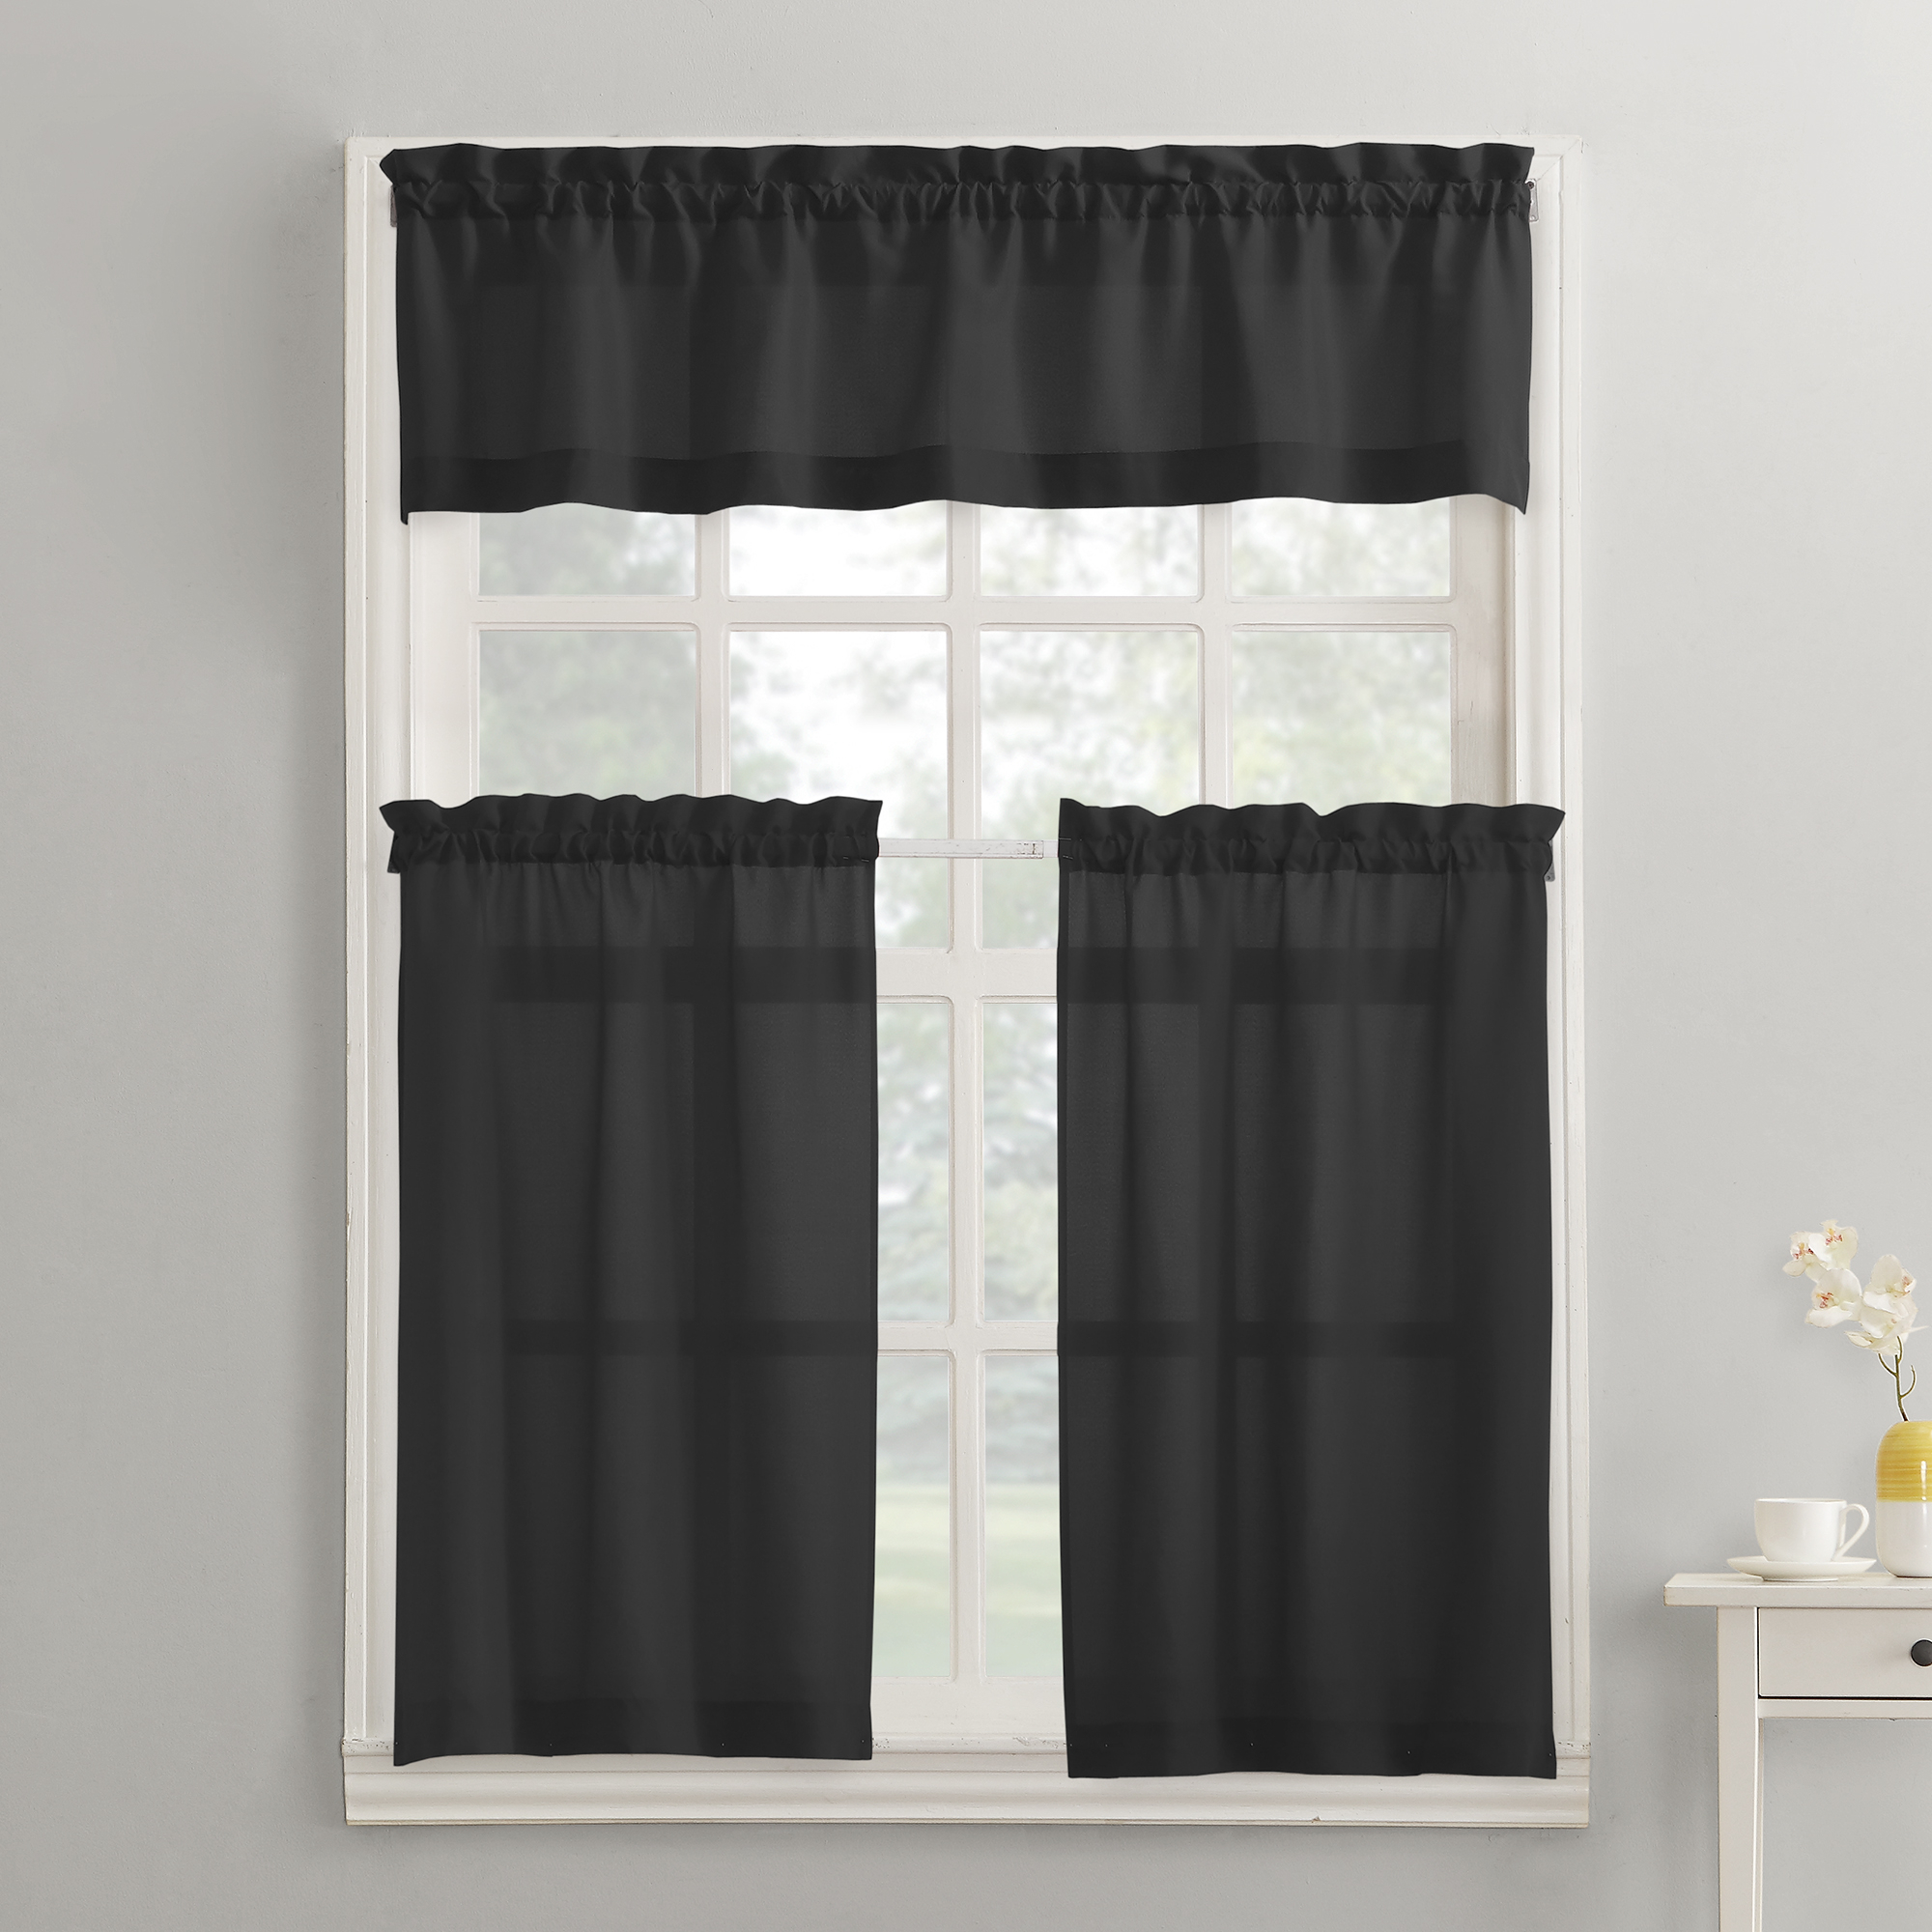 Mainstays Solid 3 Piece Kitchen Curtain Tier And Valance Set Inside Microfiber 3 Piece Kitchen Curtain Valance And Tiers Sets (View 3 of 20)